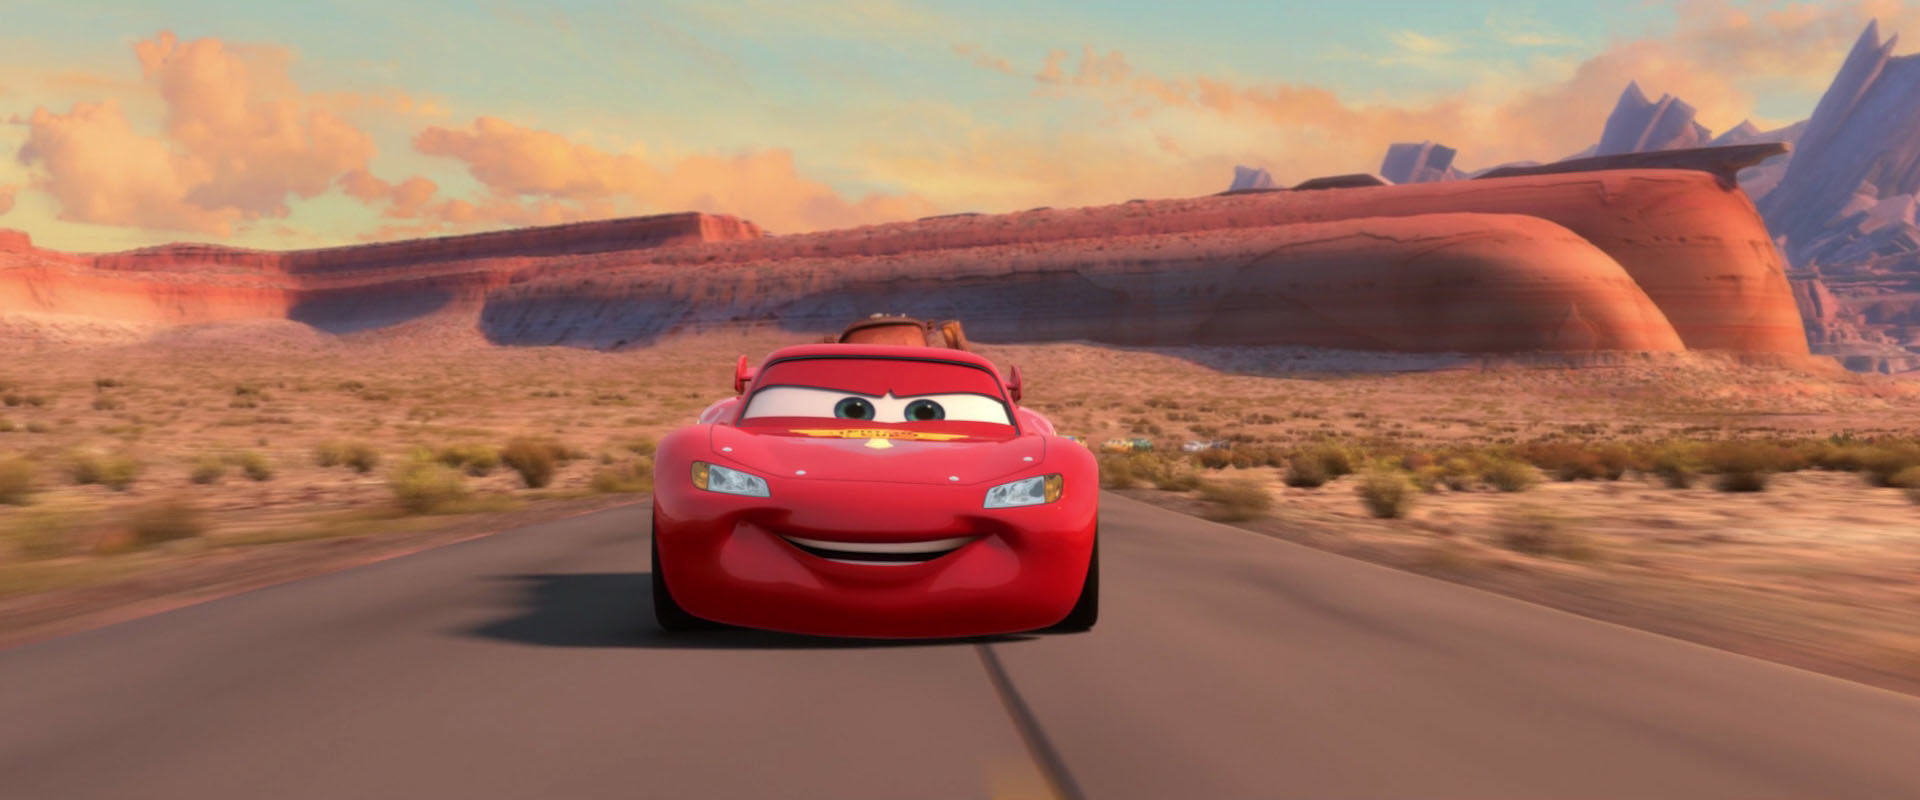 when they get back to radiator springs mcqueen organizes his own grand prix with all the racers to celebrate the end of the world grand prix - Mcqueen Flash Mcqueen